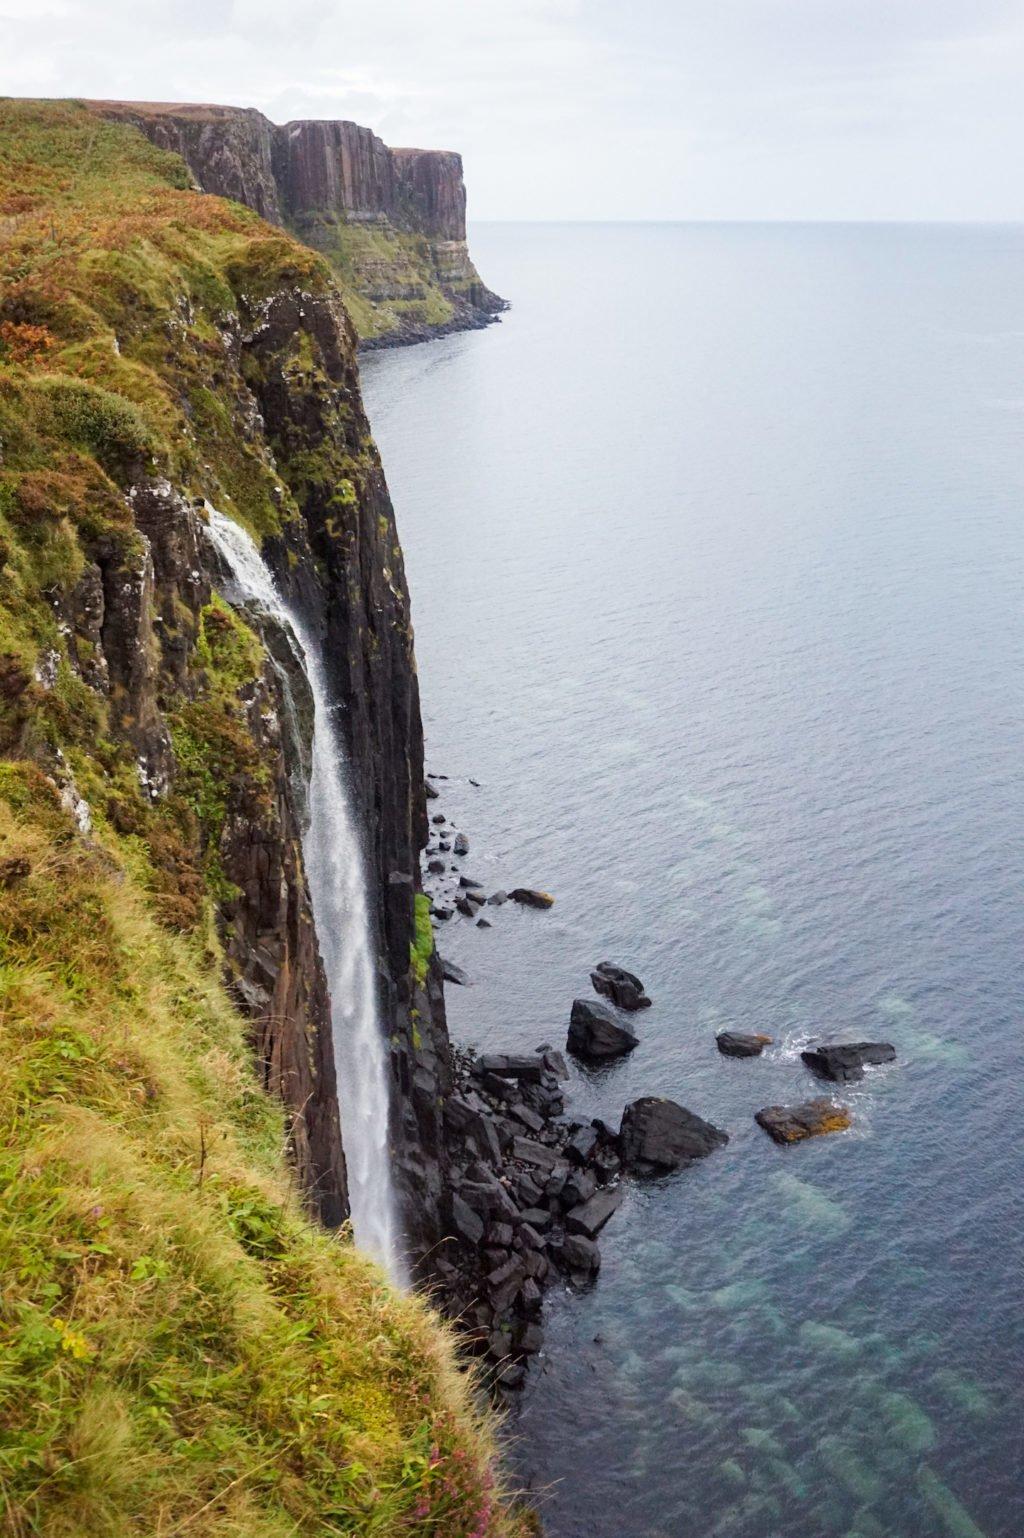 Mealt Falls and Kilt Rock •3-Day Tour to Skye, The Highlands, and Loch Ness | The Wanderful Me